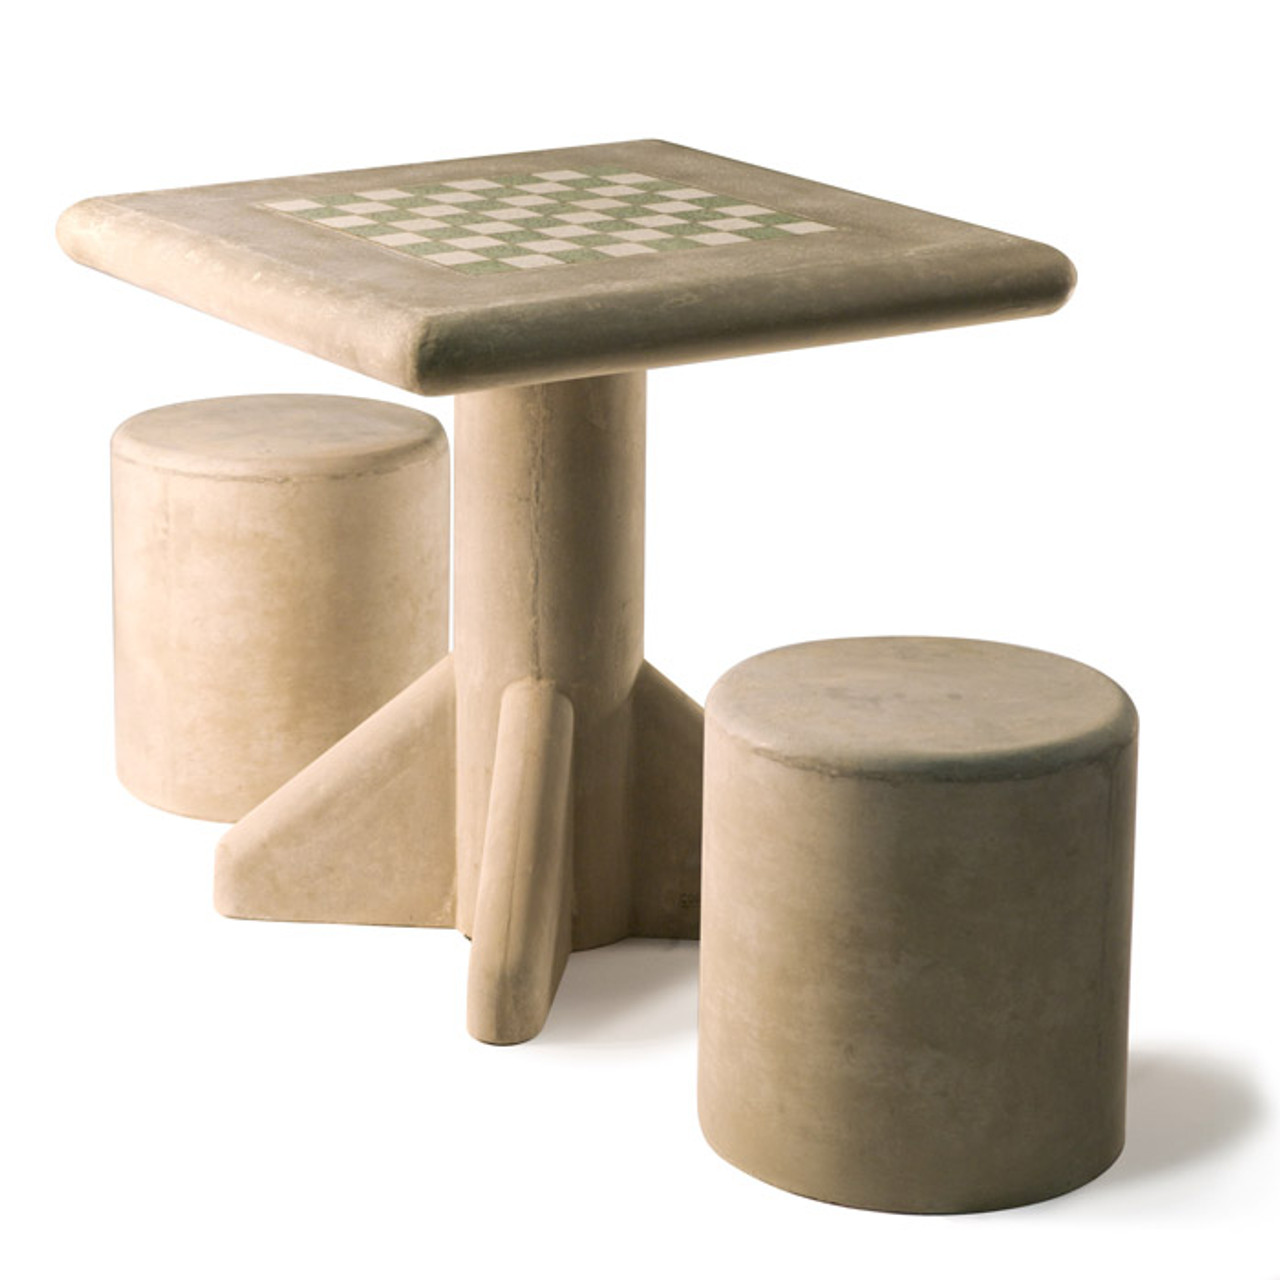 Concrete Freestanding Chess Table and Stool Set - Kenneth Lynch and Sons